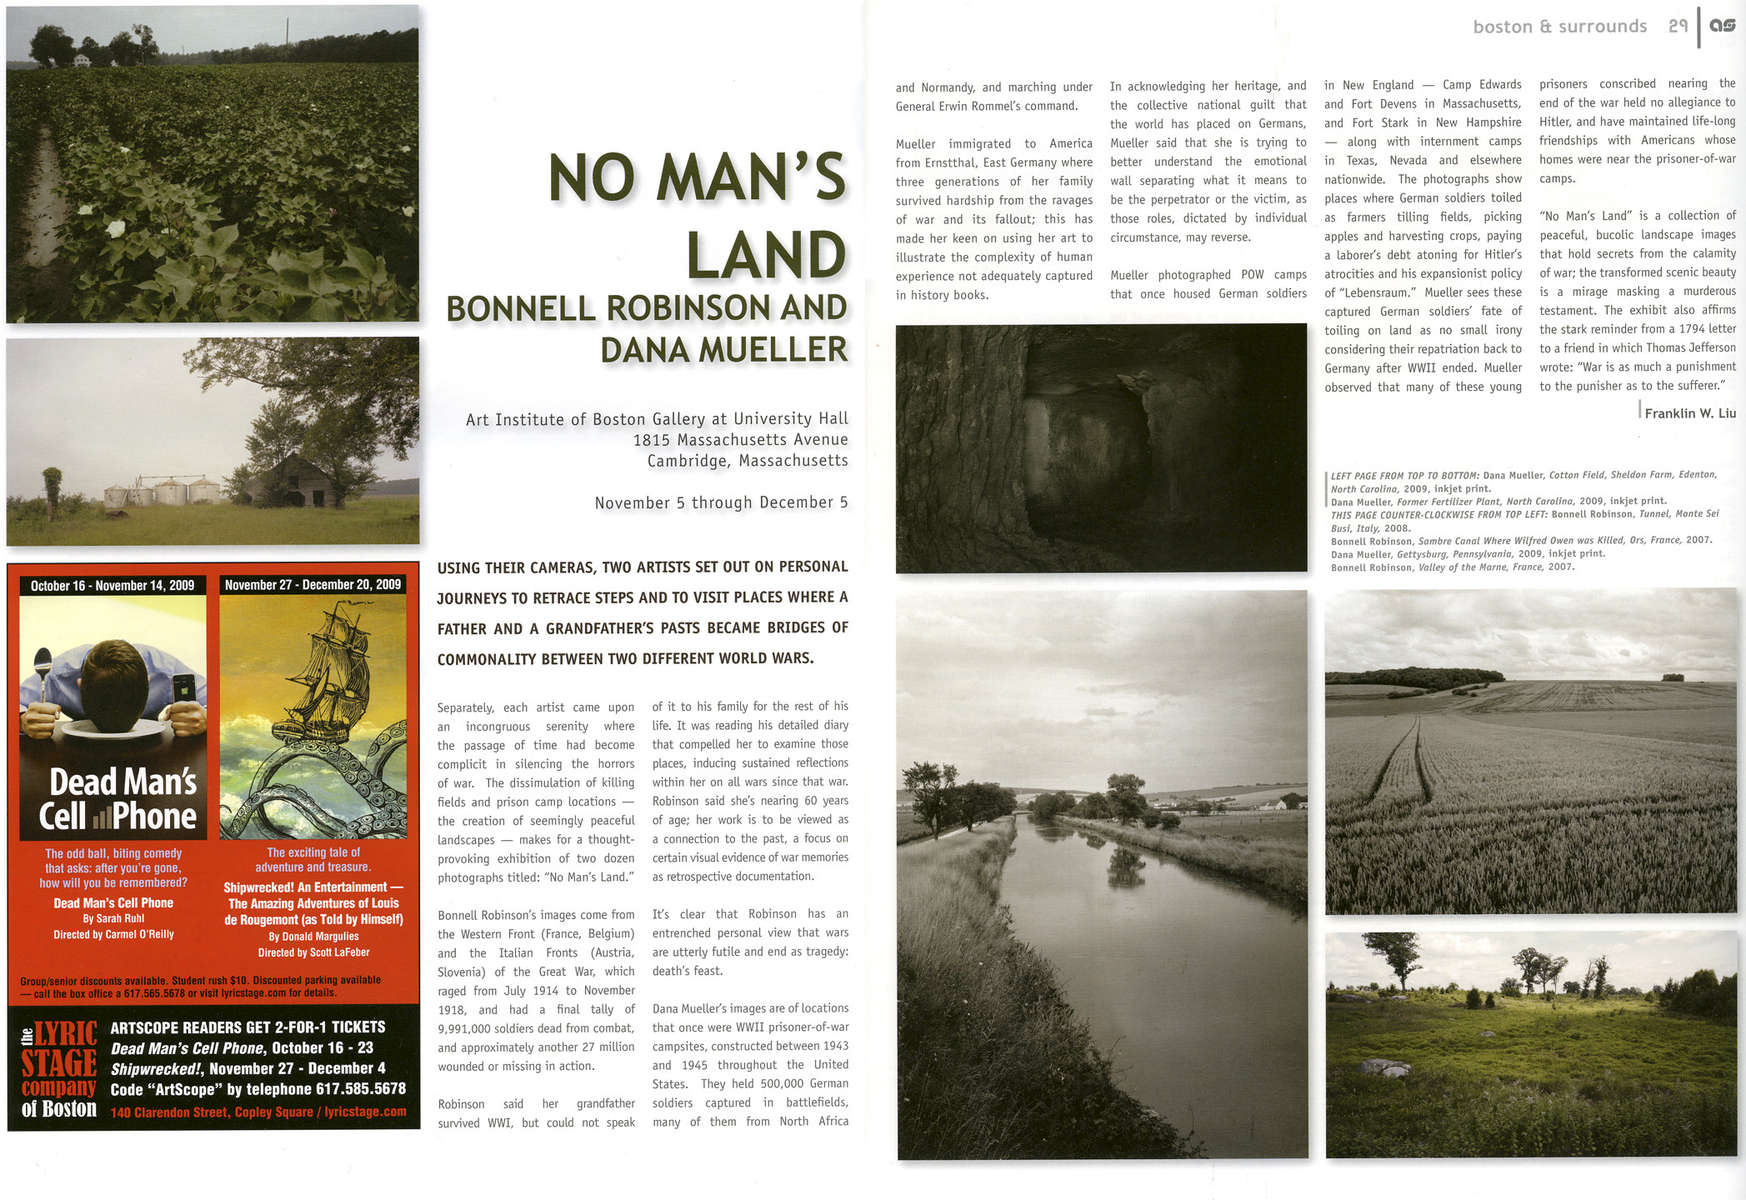 NO MAN'S LAND Bonnell Robinson and Dana MuellerBy Franklin W. Liu